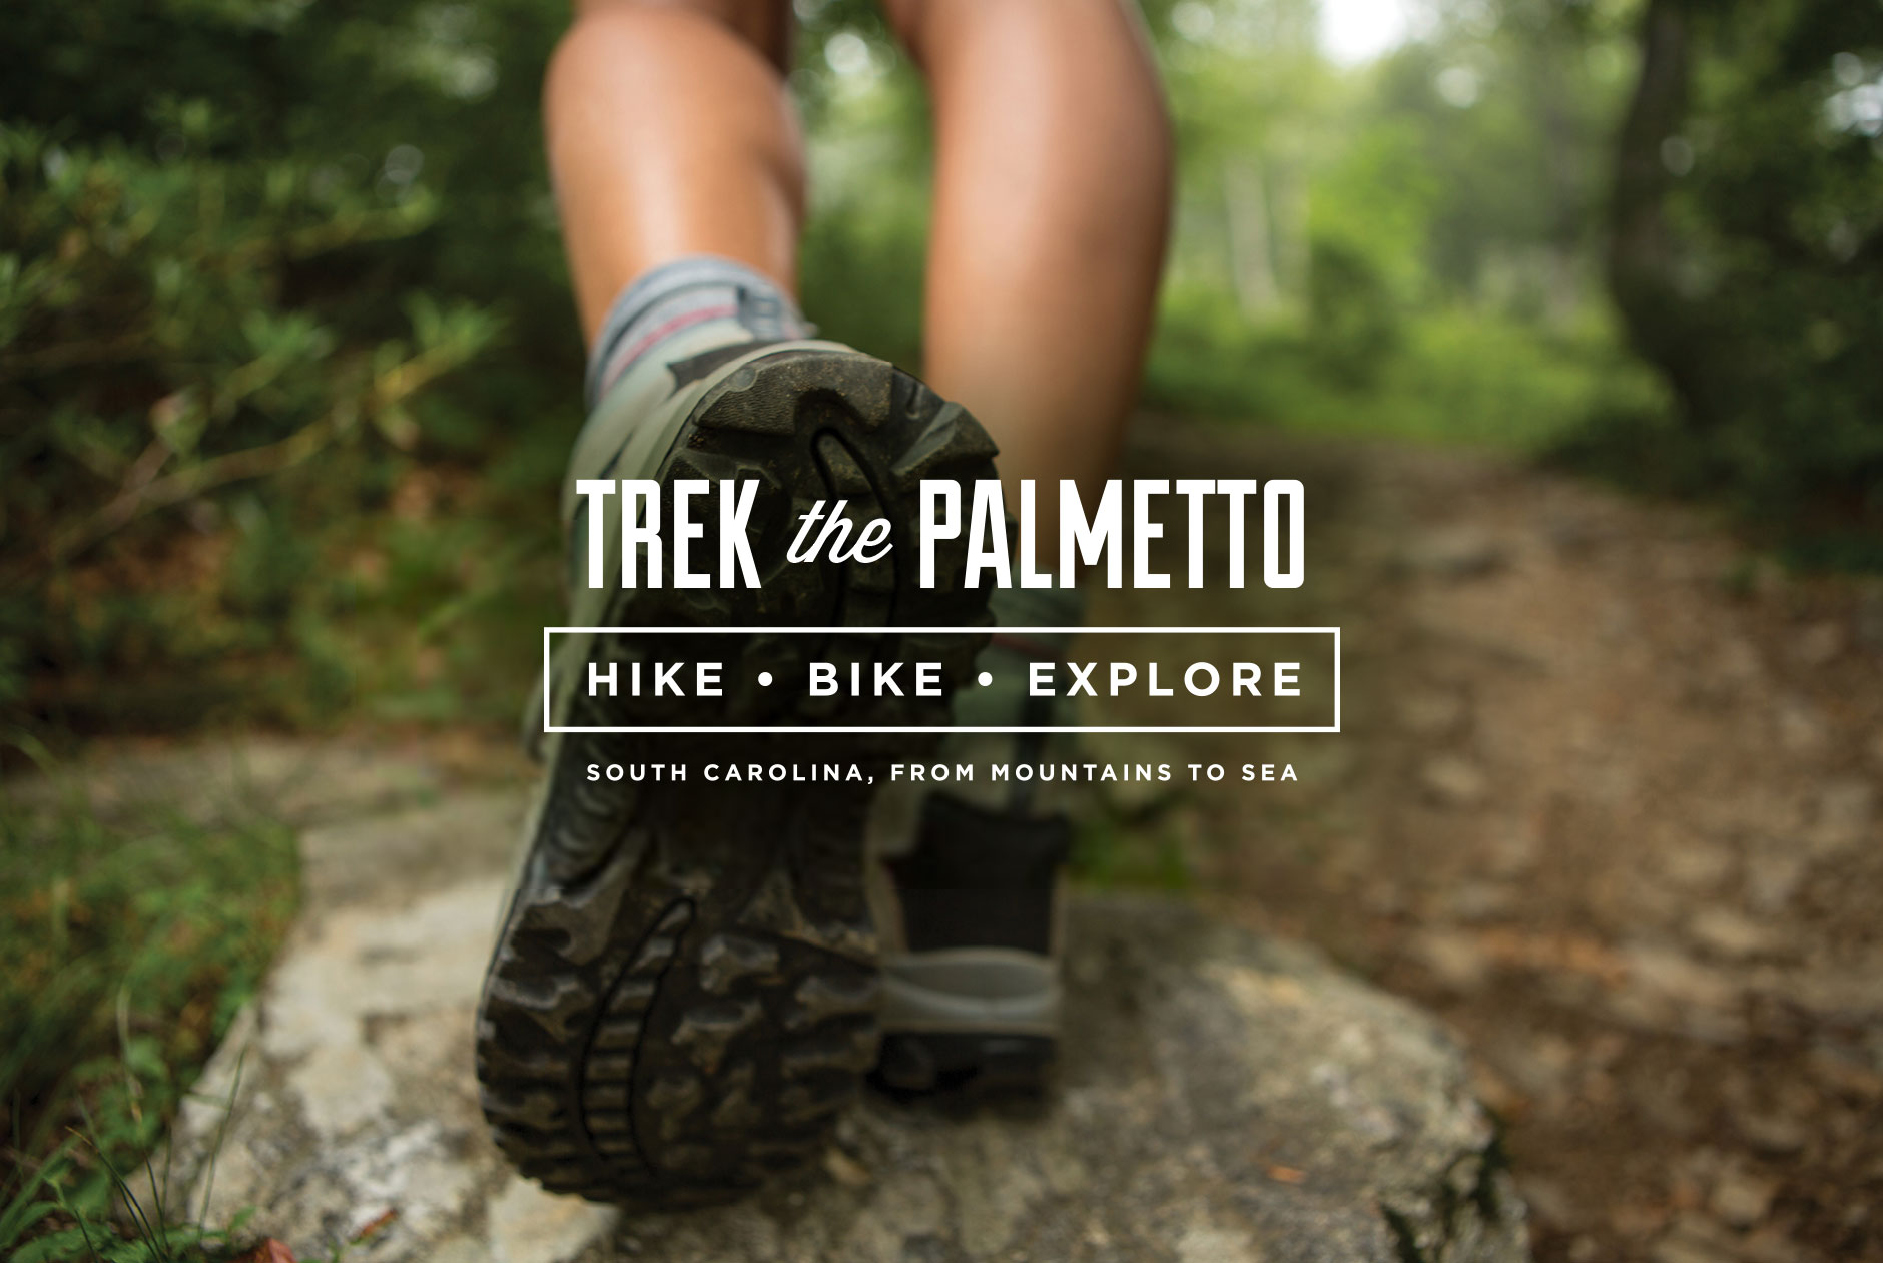 The Palmetto Trail